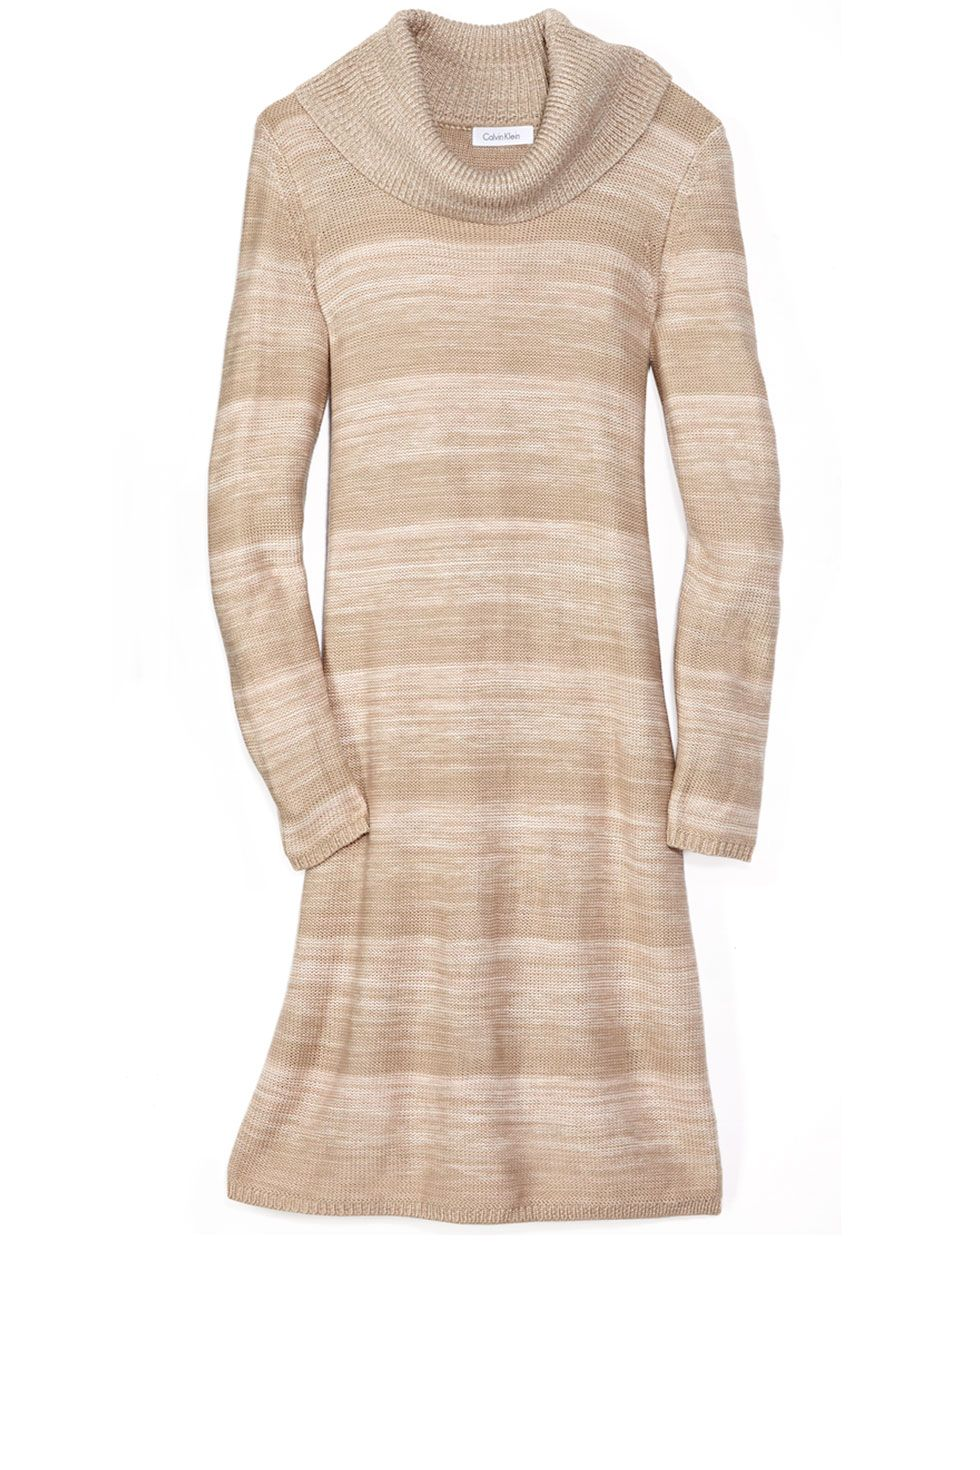 "<p>Calvin Klein White Label Space Dye Mock Neck Sweater Dress, $129.50; <a href=""http://www.calvinklein.com/shop/en/ck/womens-clothing/womens-national-ad-1/18486774"" target=""_blank"">calvinklein.com</a></p>"